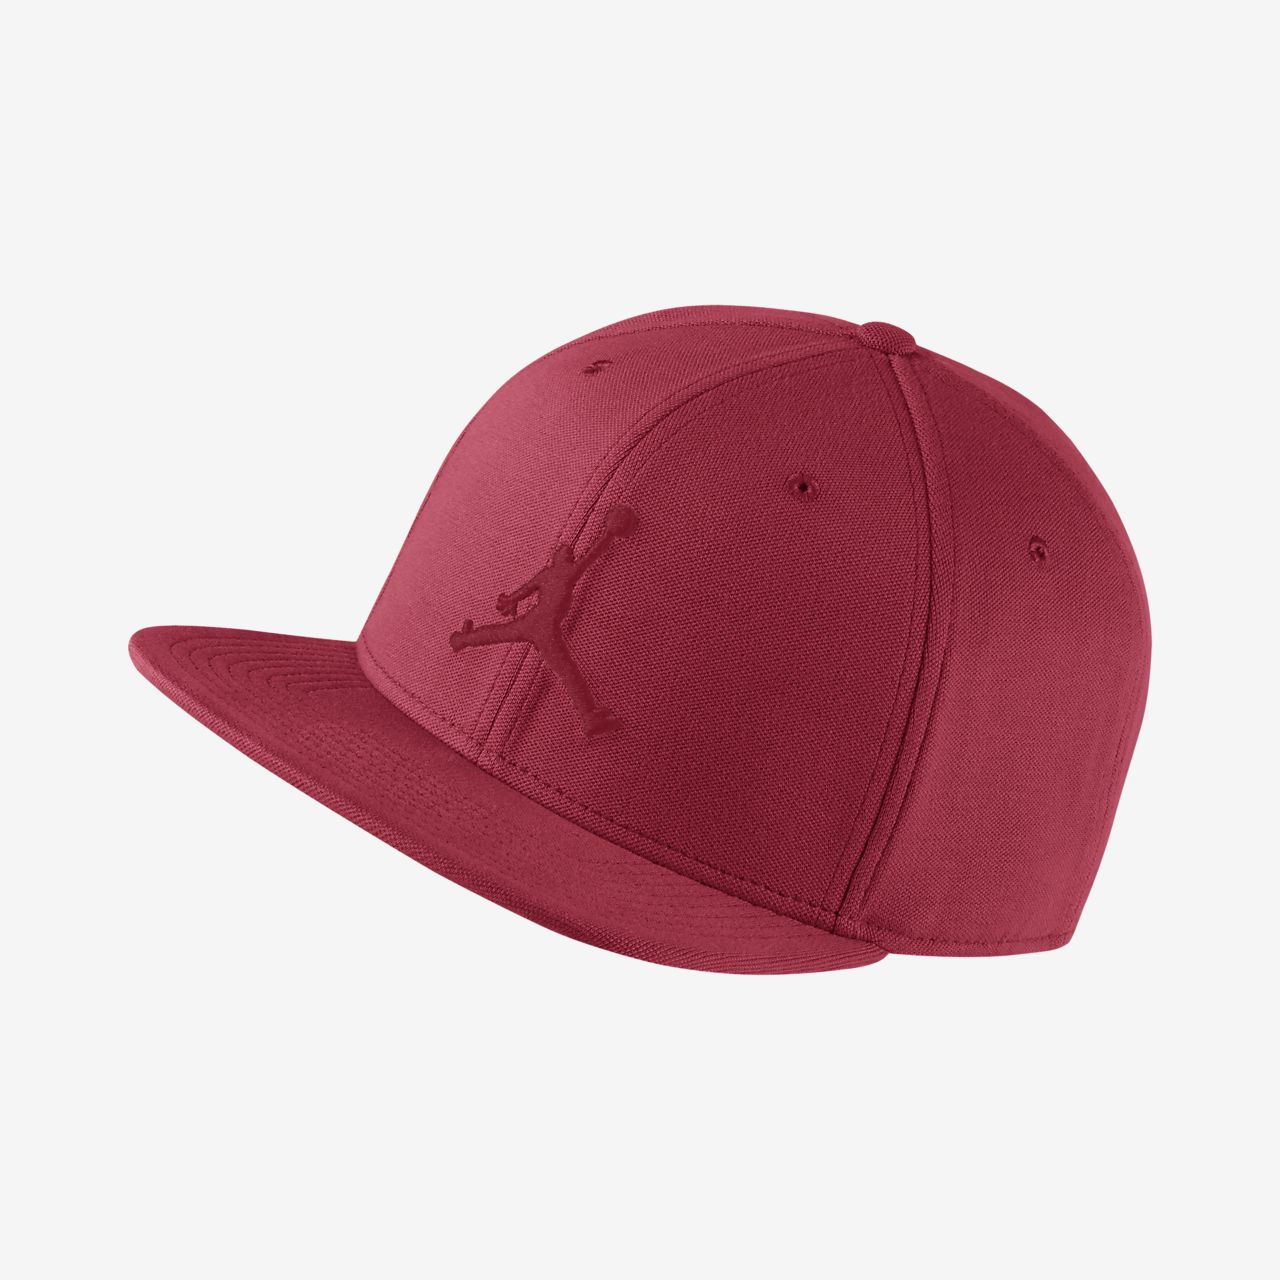 09c4fe1a45e195 Jordan Jumpman Snapback Adjustable Hat. Nike.com GB